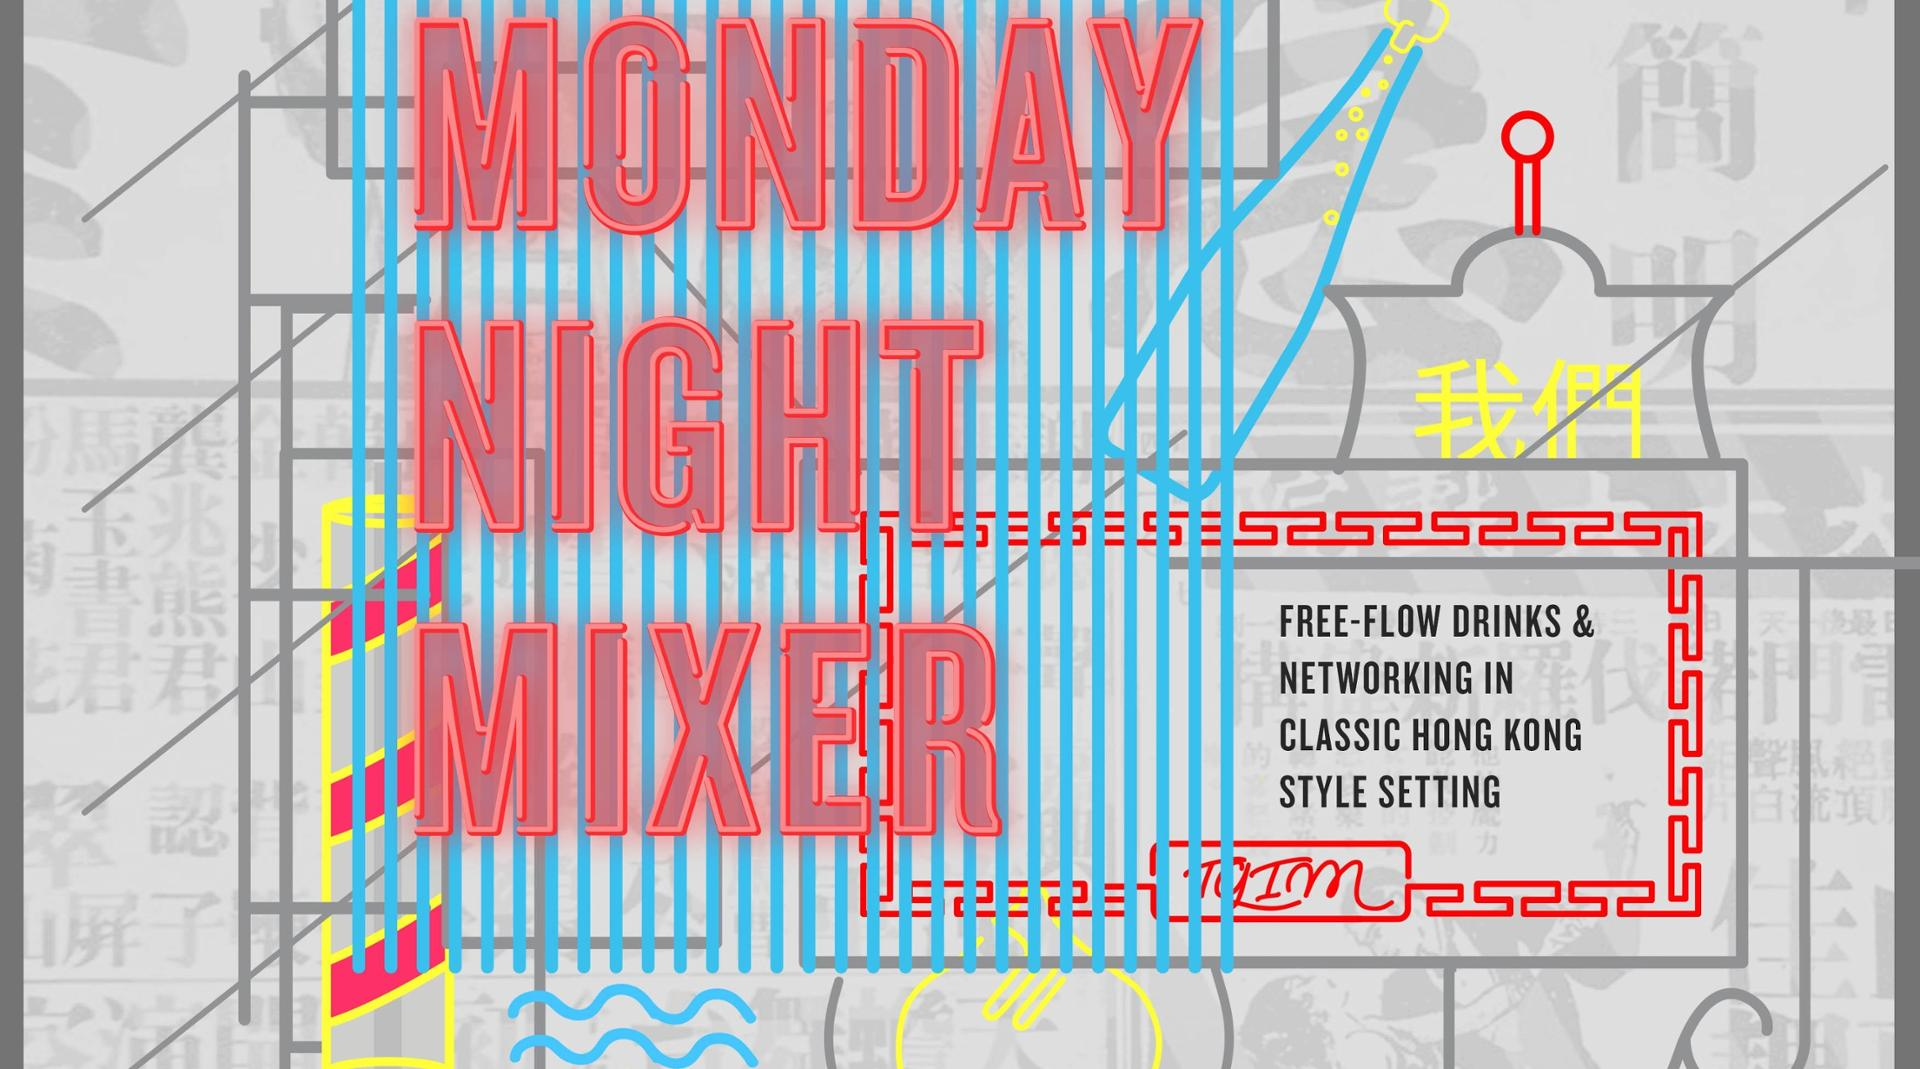 Monday Night Mixer: Free-flow drinks and discussion in classic Hong Kong style